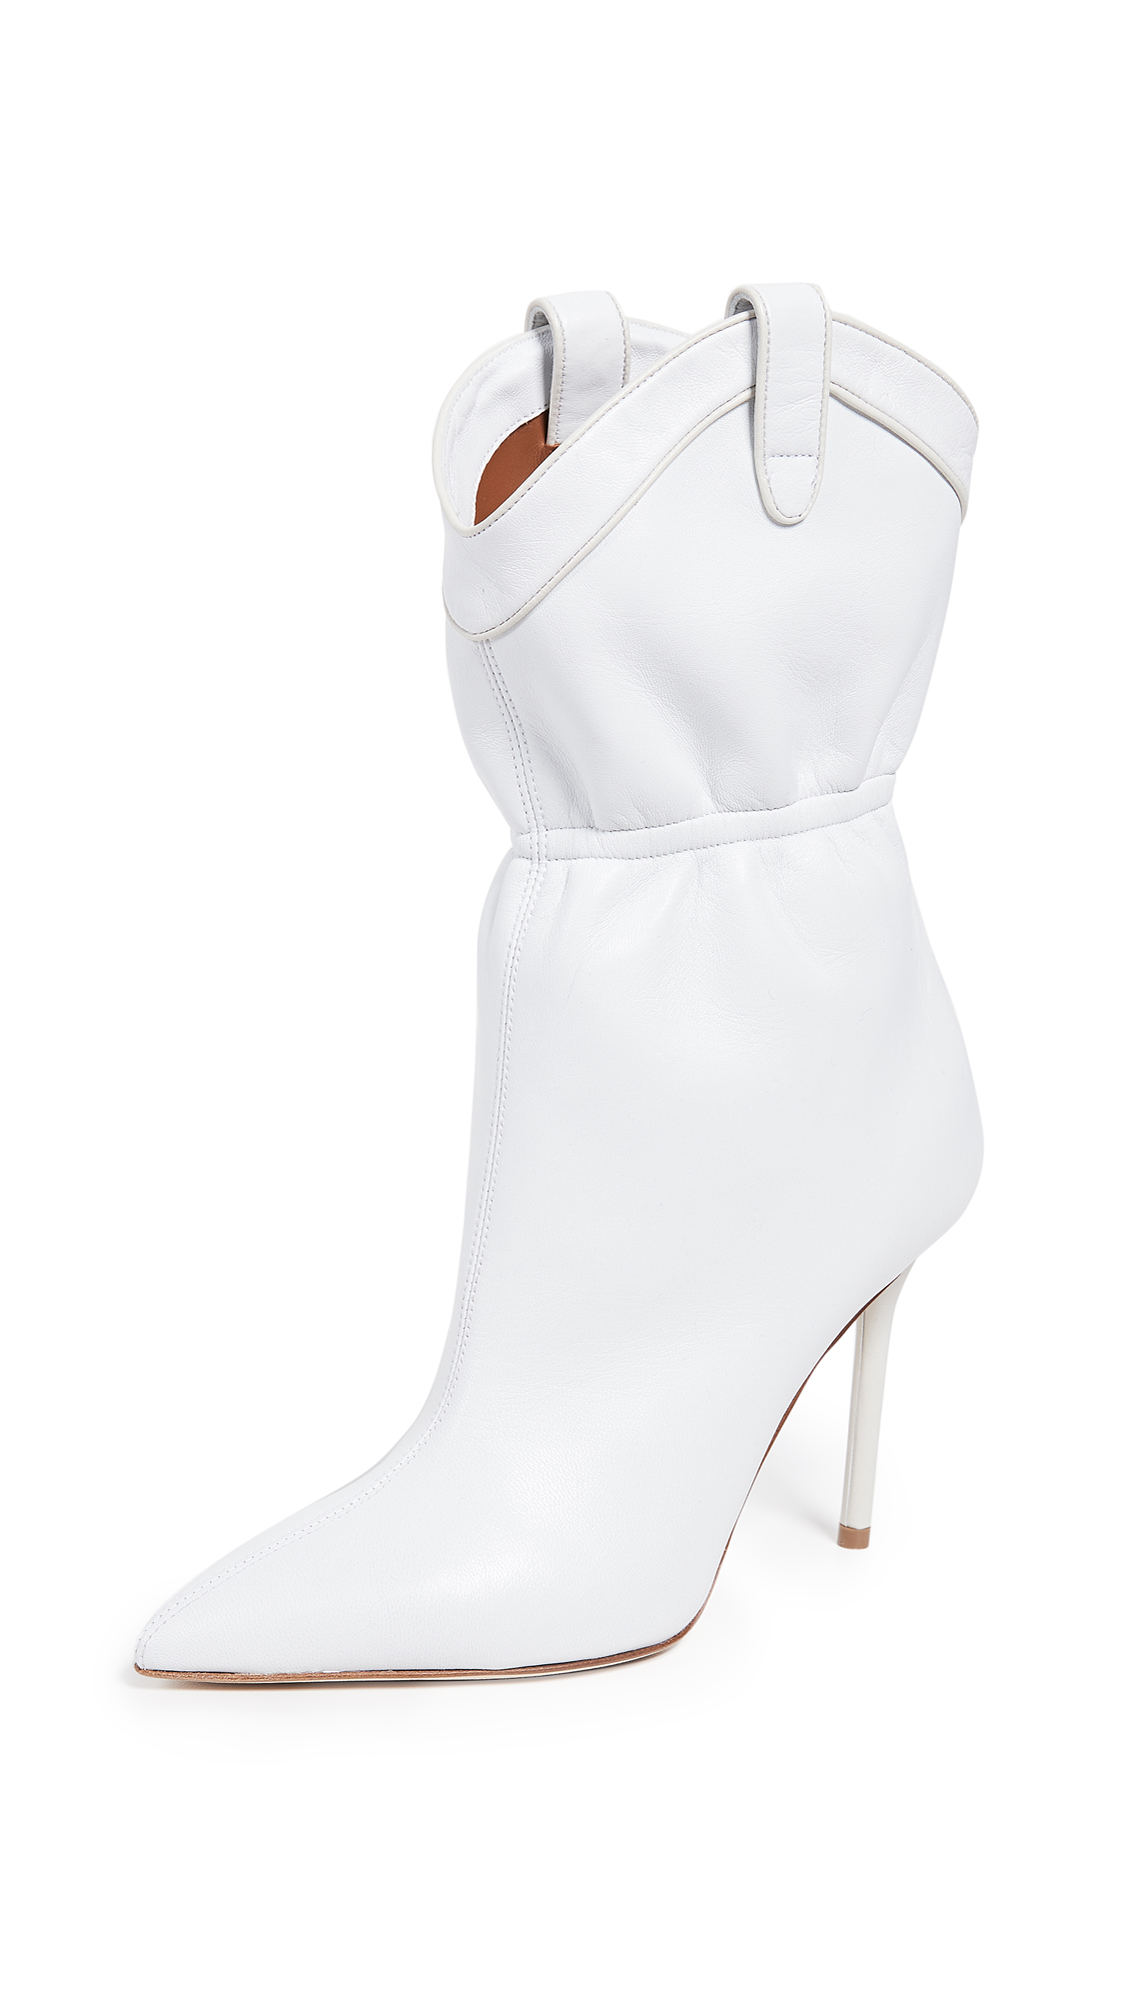 Malone Souliers Daisy 100mm Boots - White/Cream